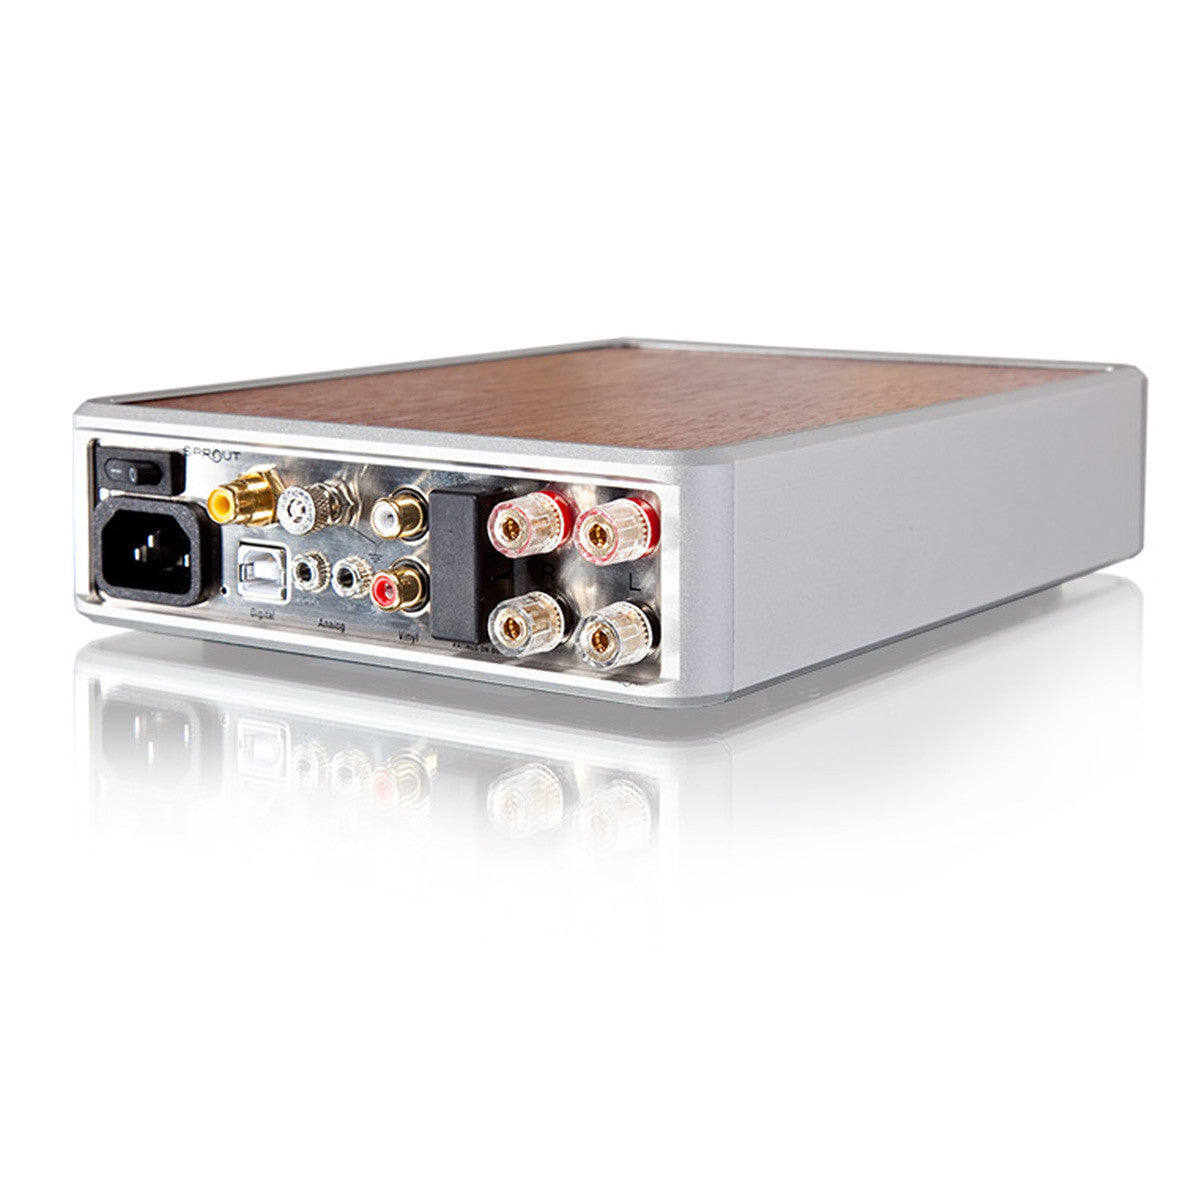 PS Audio: Sprout Integrated Amplifier - Amp, Phono Pre-Amp, DAC, Bluetooth back